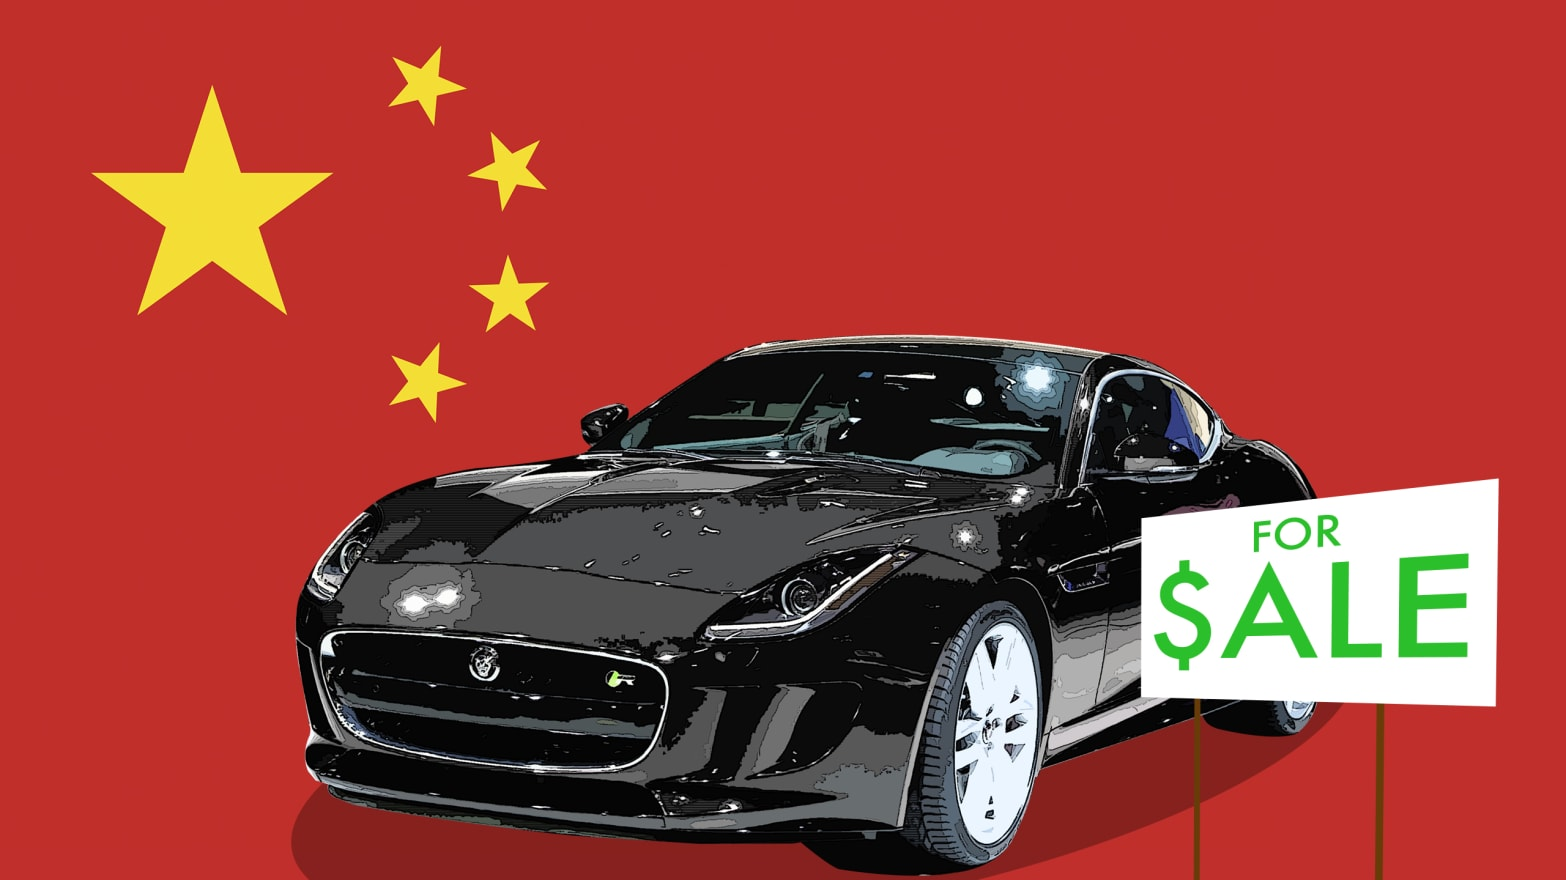 The Lucrative, Barely Legal Business of Shipping Luxury Cars to China